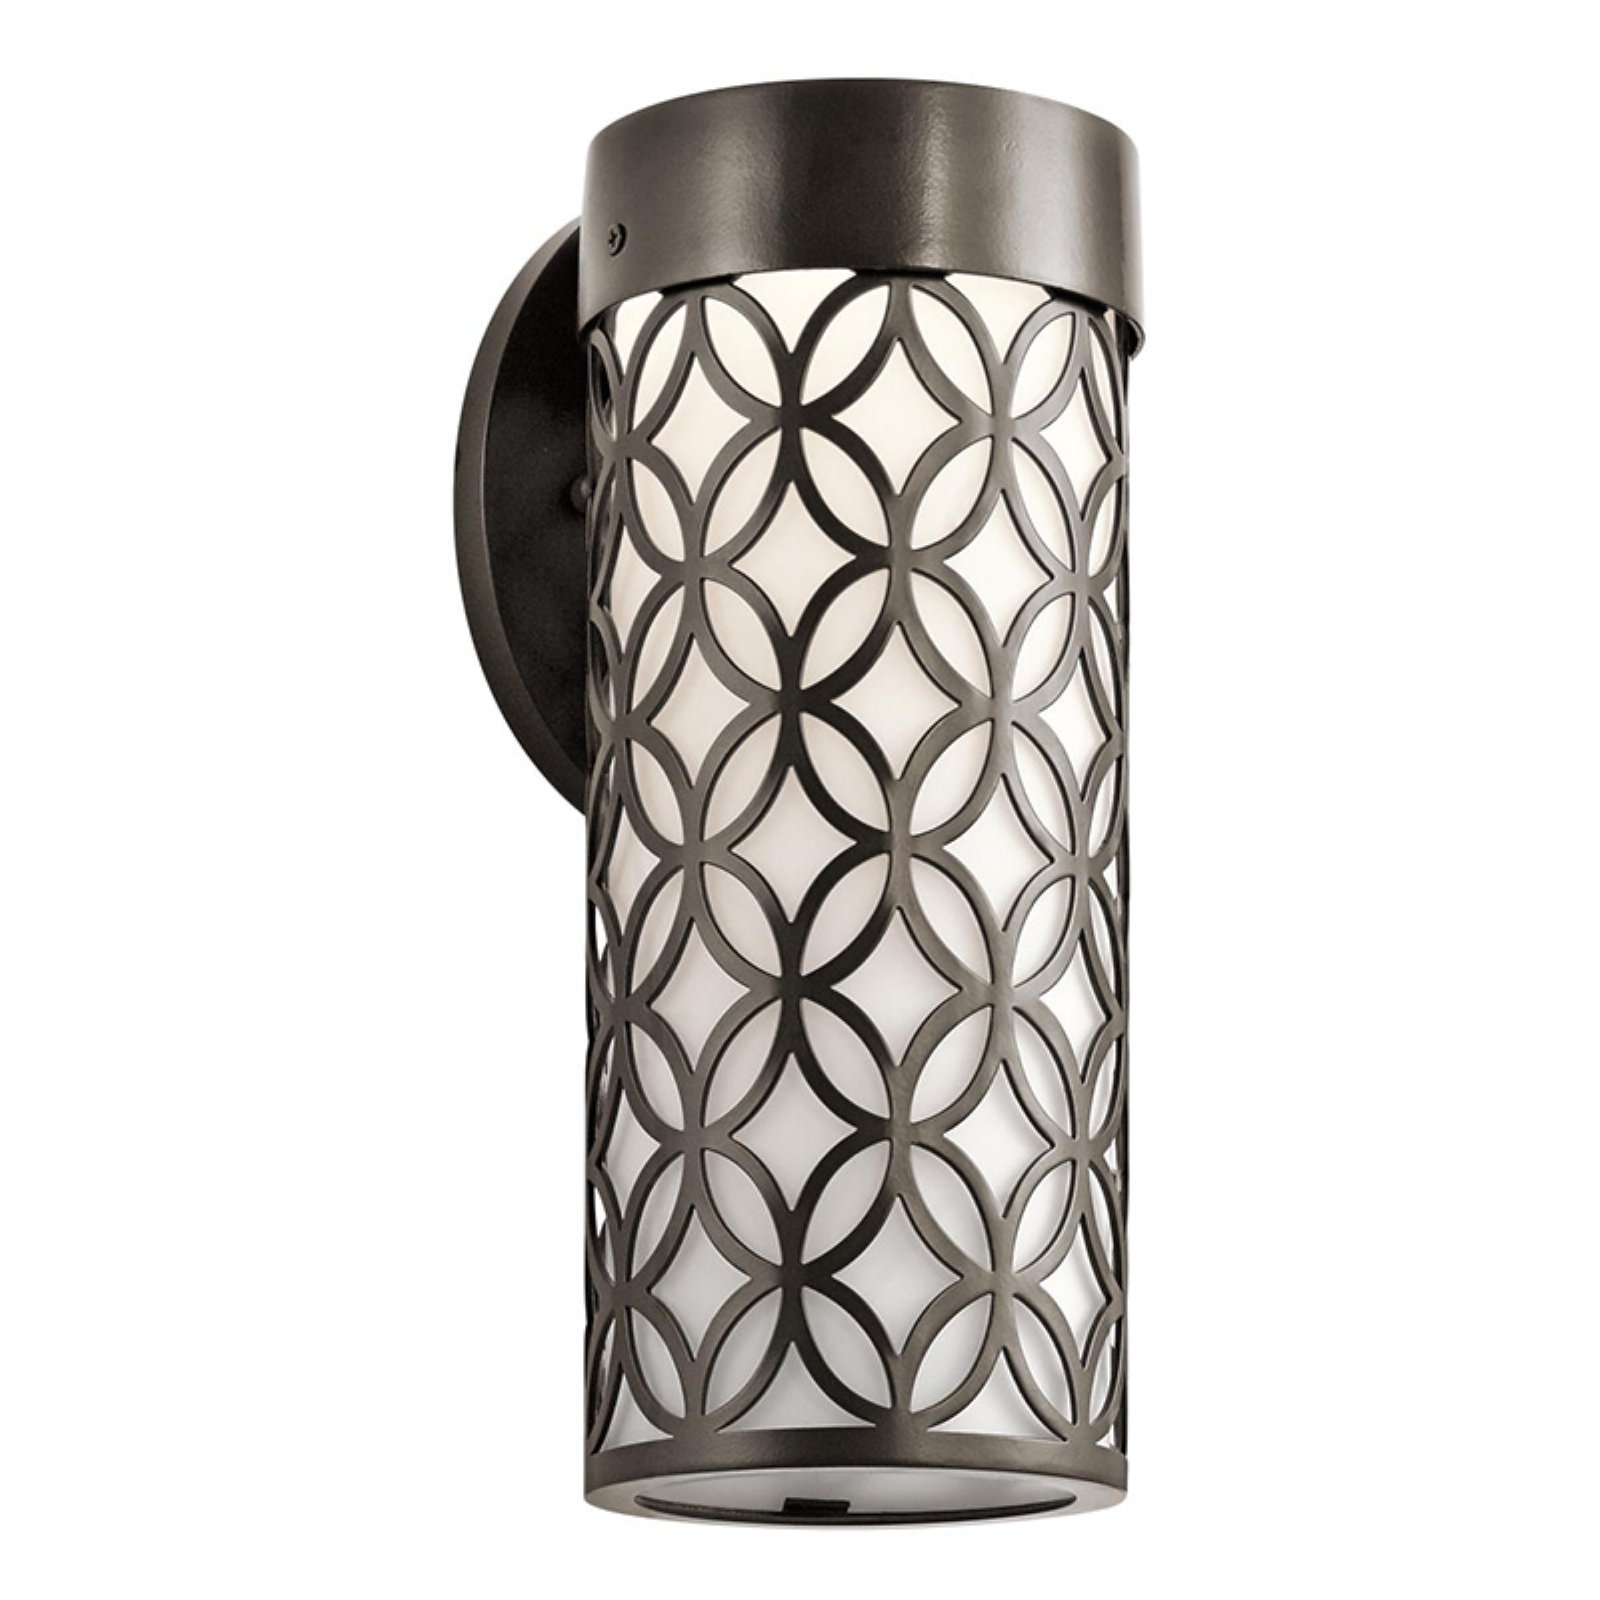 Kichler Cidney 4952 Outdoor Wall Sconce